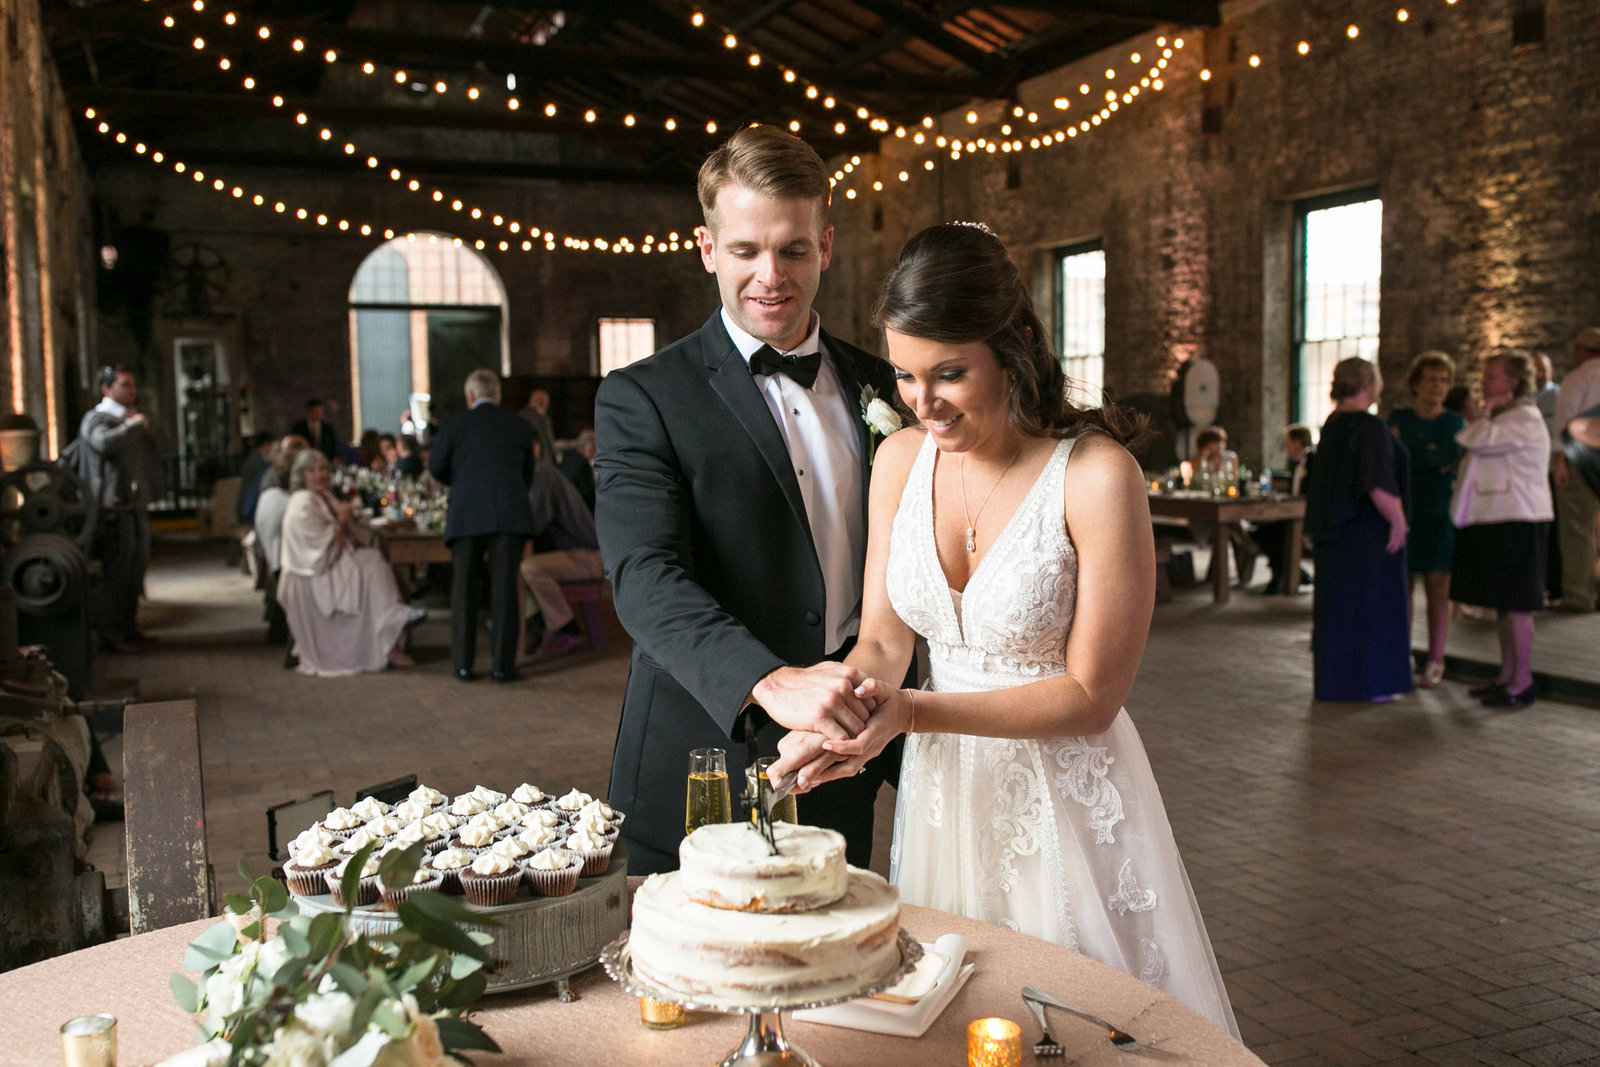 bride and groom cutting cake at roundhouse railroad museaum wedding savannah georgia